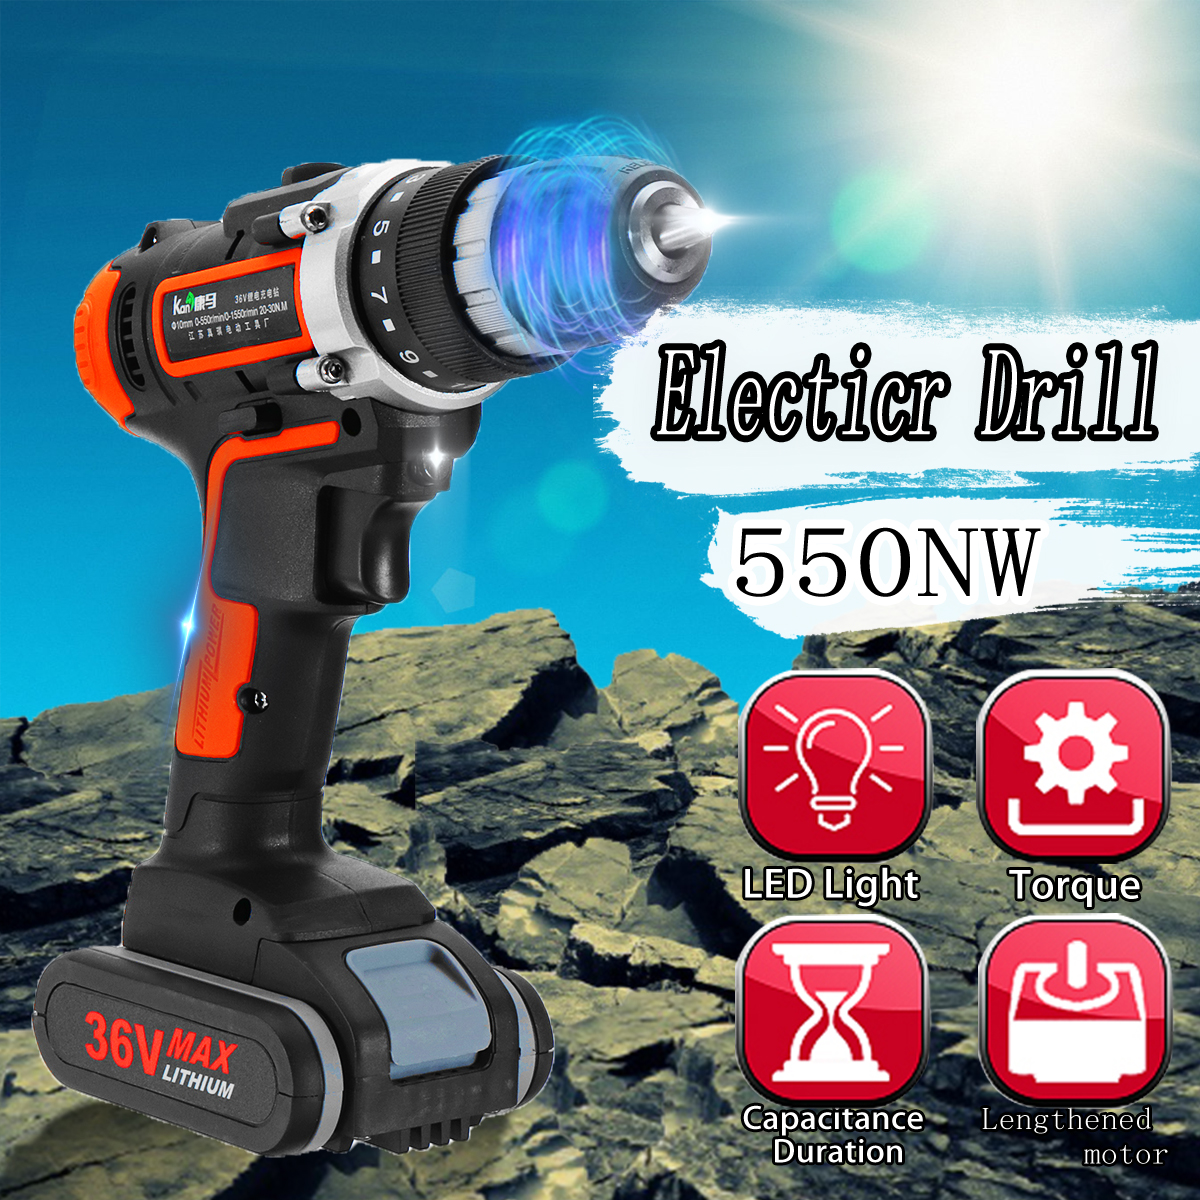 36V 550Nm Cordless Electric Drill 15+1 Screw Driver with 4800mAh Lithium Battery